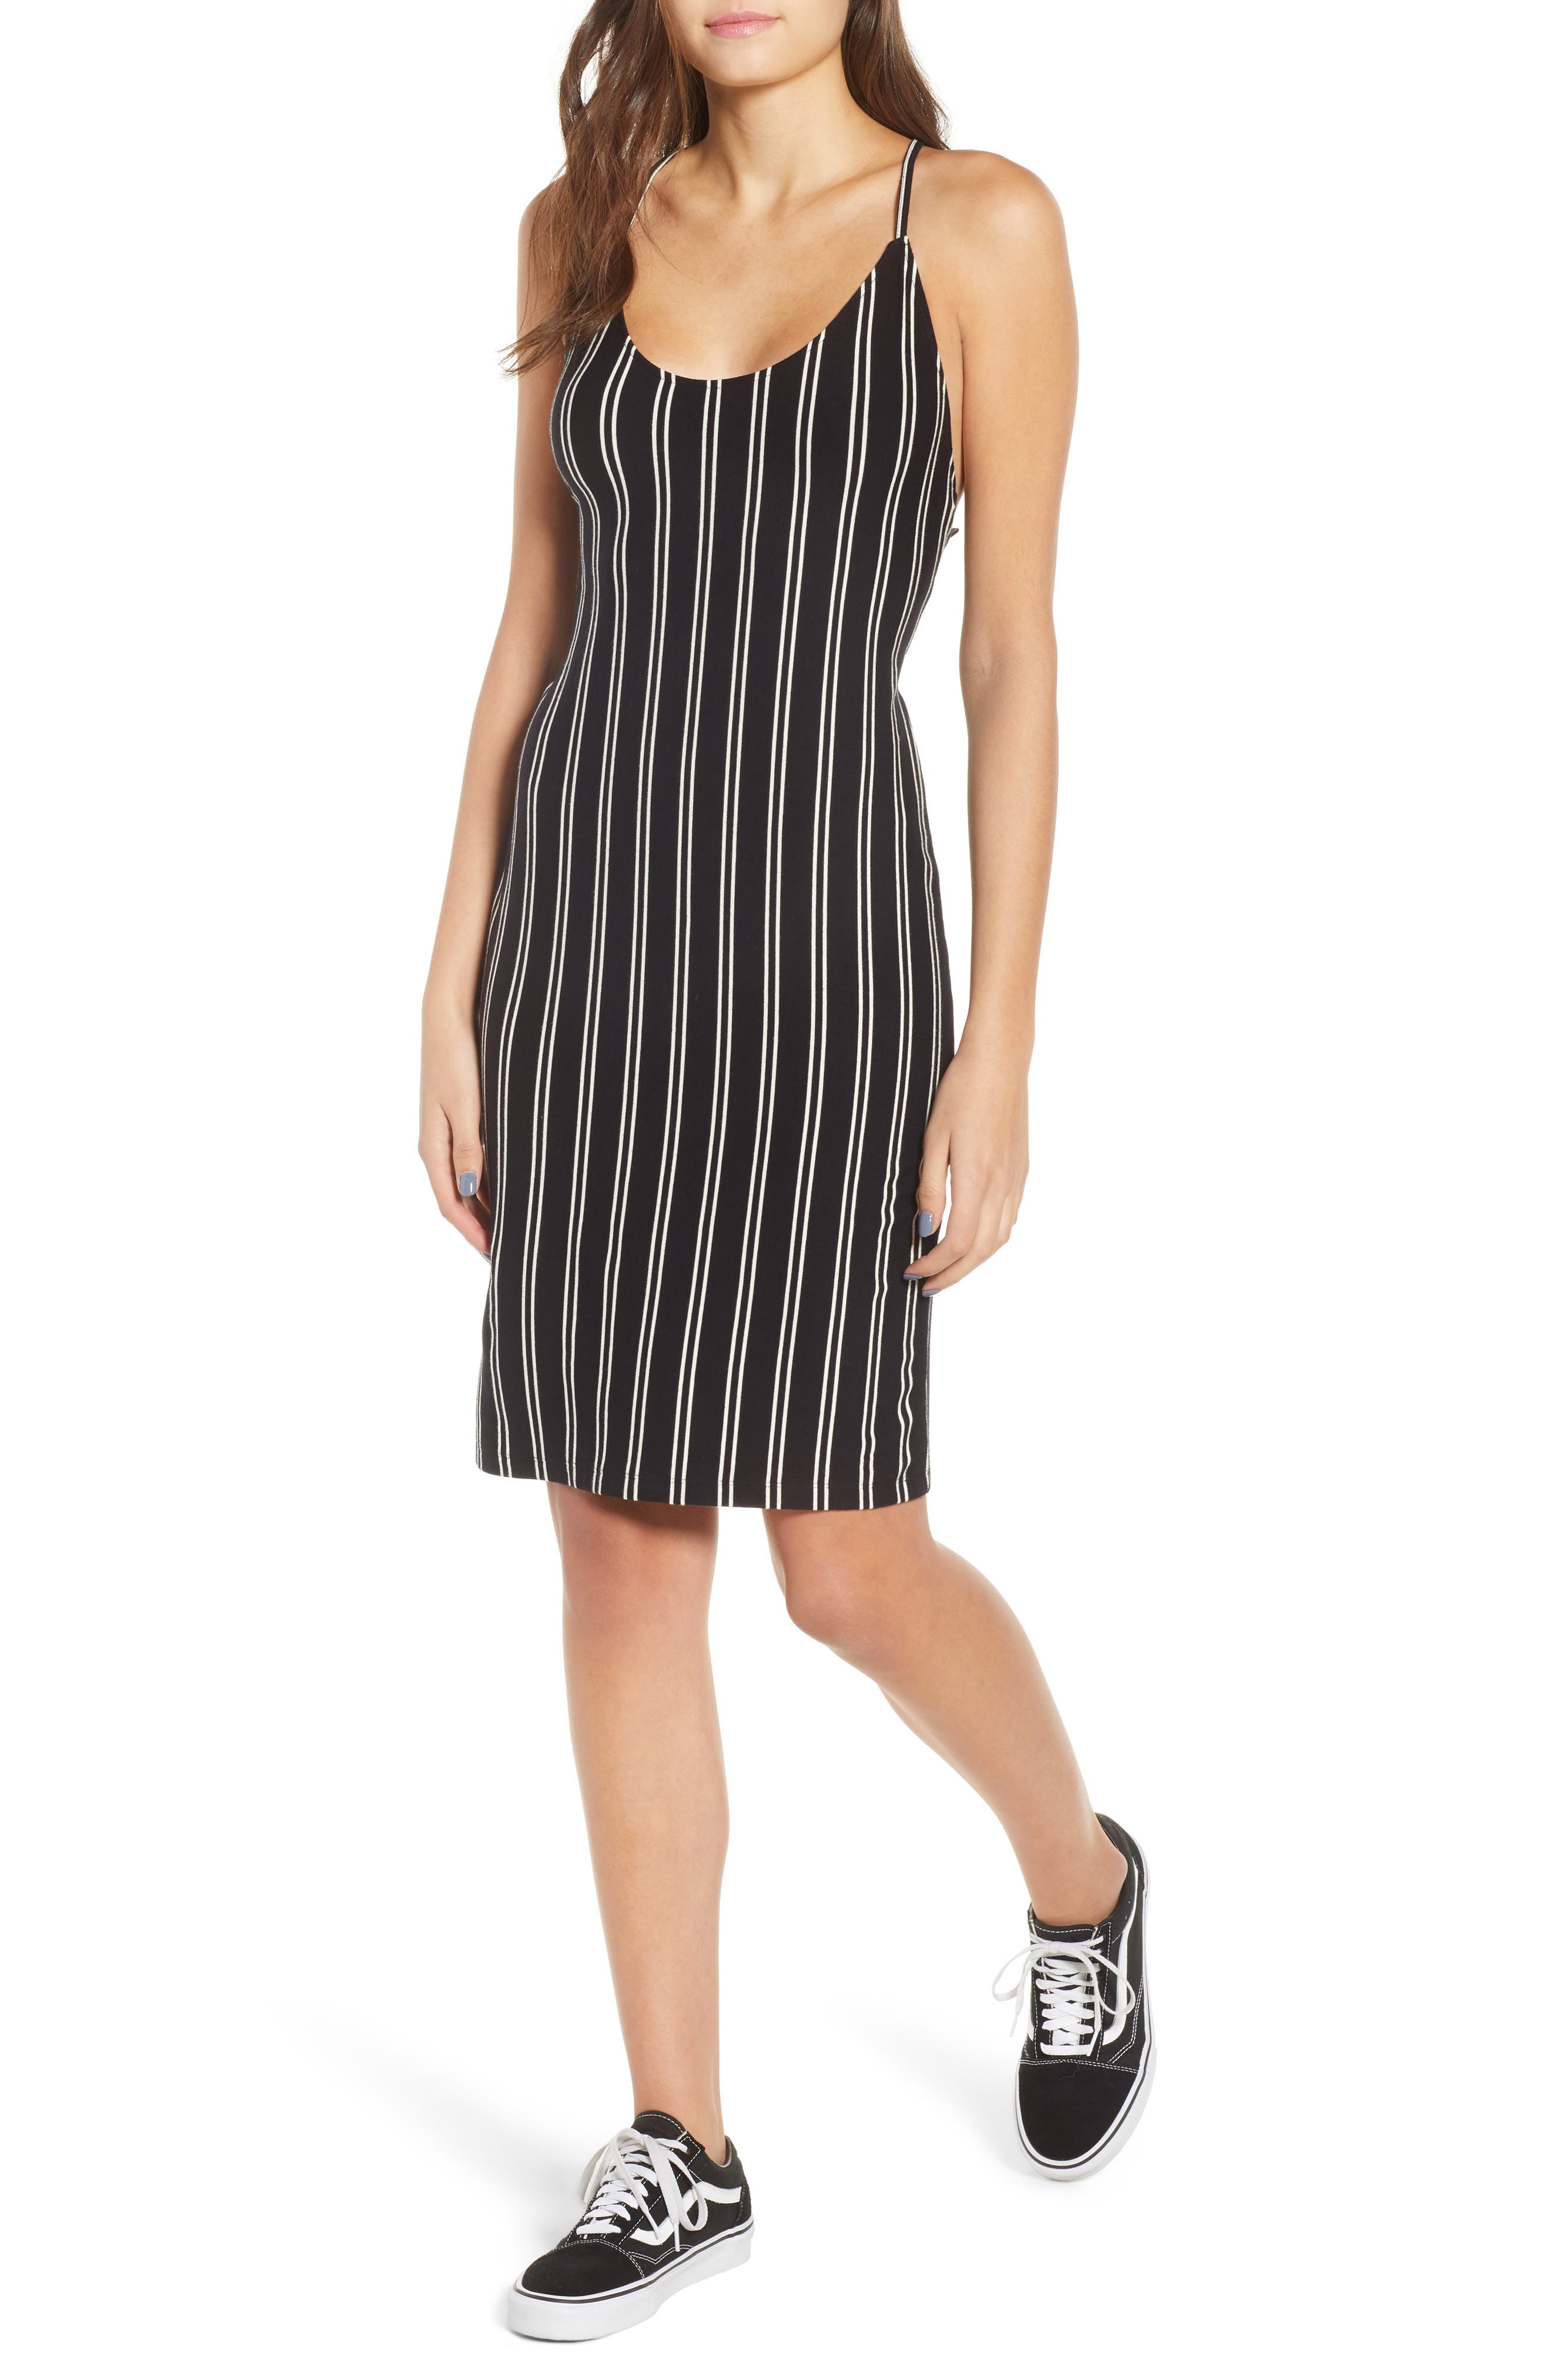 Lockette Strappy Striped Dress,                             Main thumbnail 1, color,